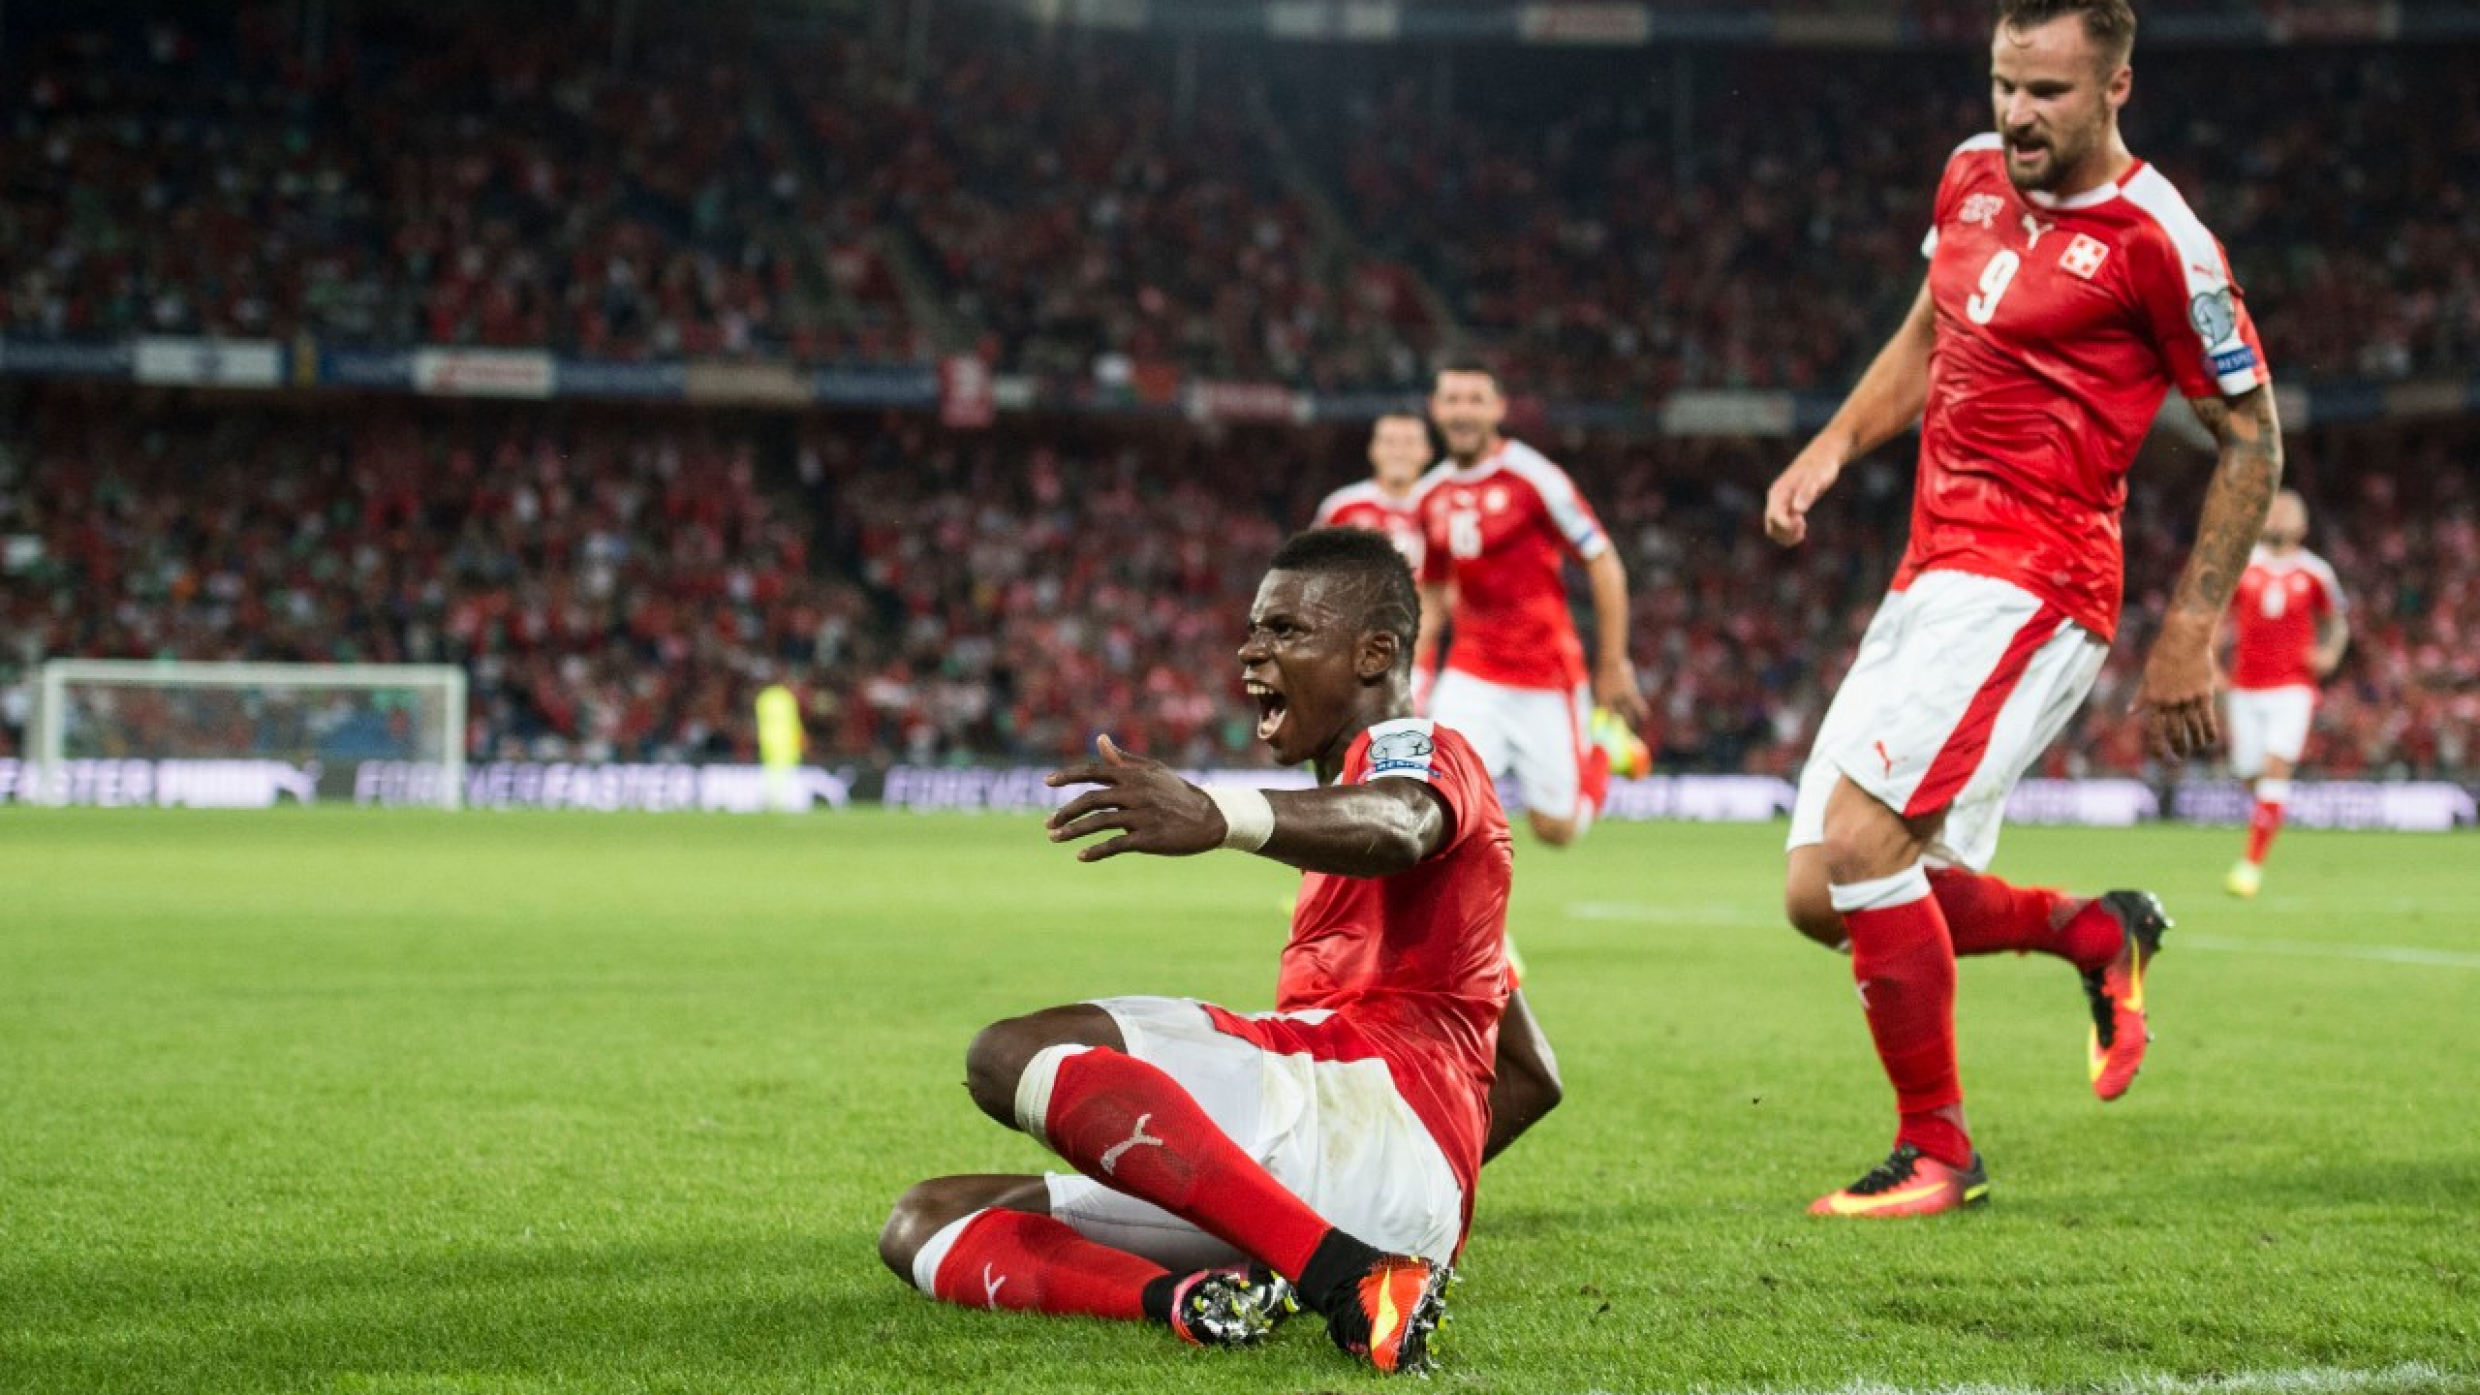 Swiss forwards Haris Seferovic, right, and Breel Embolo, left, celebrate the goal during the 2018 Fifa World Cup Russia group B qualification soccer match between Switzerland and Portugal at the St. Jakob-Park stadium, in Basel, Switzerland, Tuesday, September 6, 2016. (KEYSTONE/Ennio Leanza)